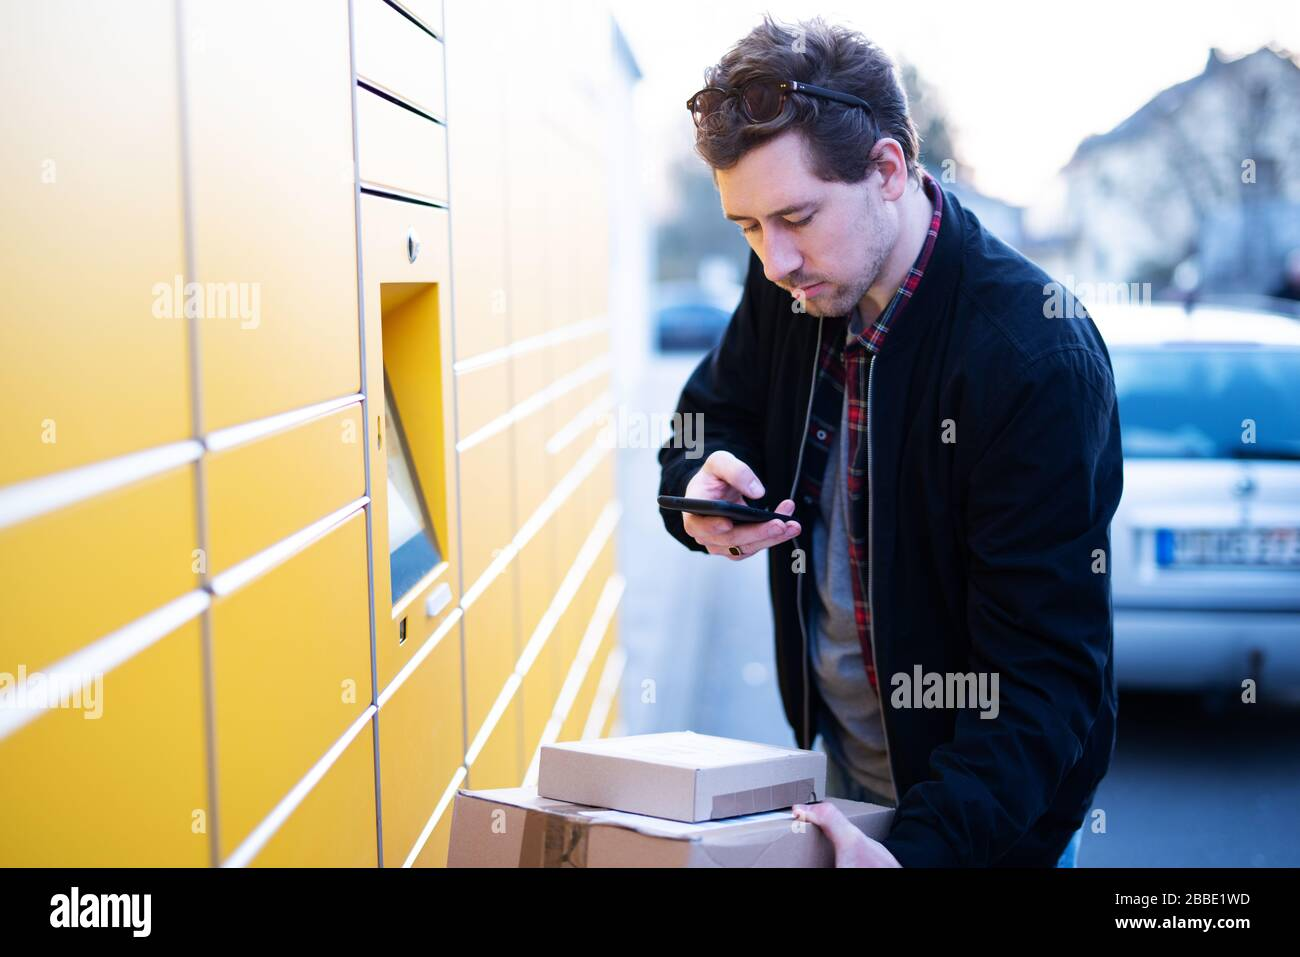 A man brings packages to a packing station or picks them up Stock Photo